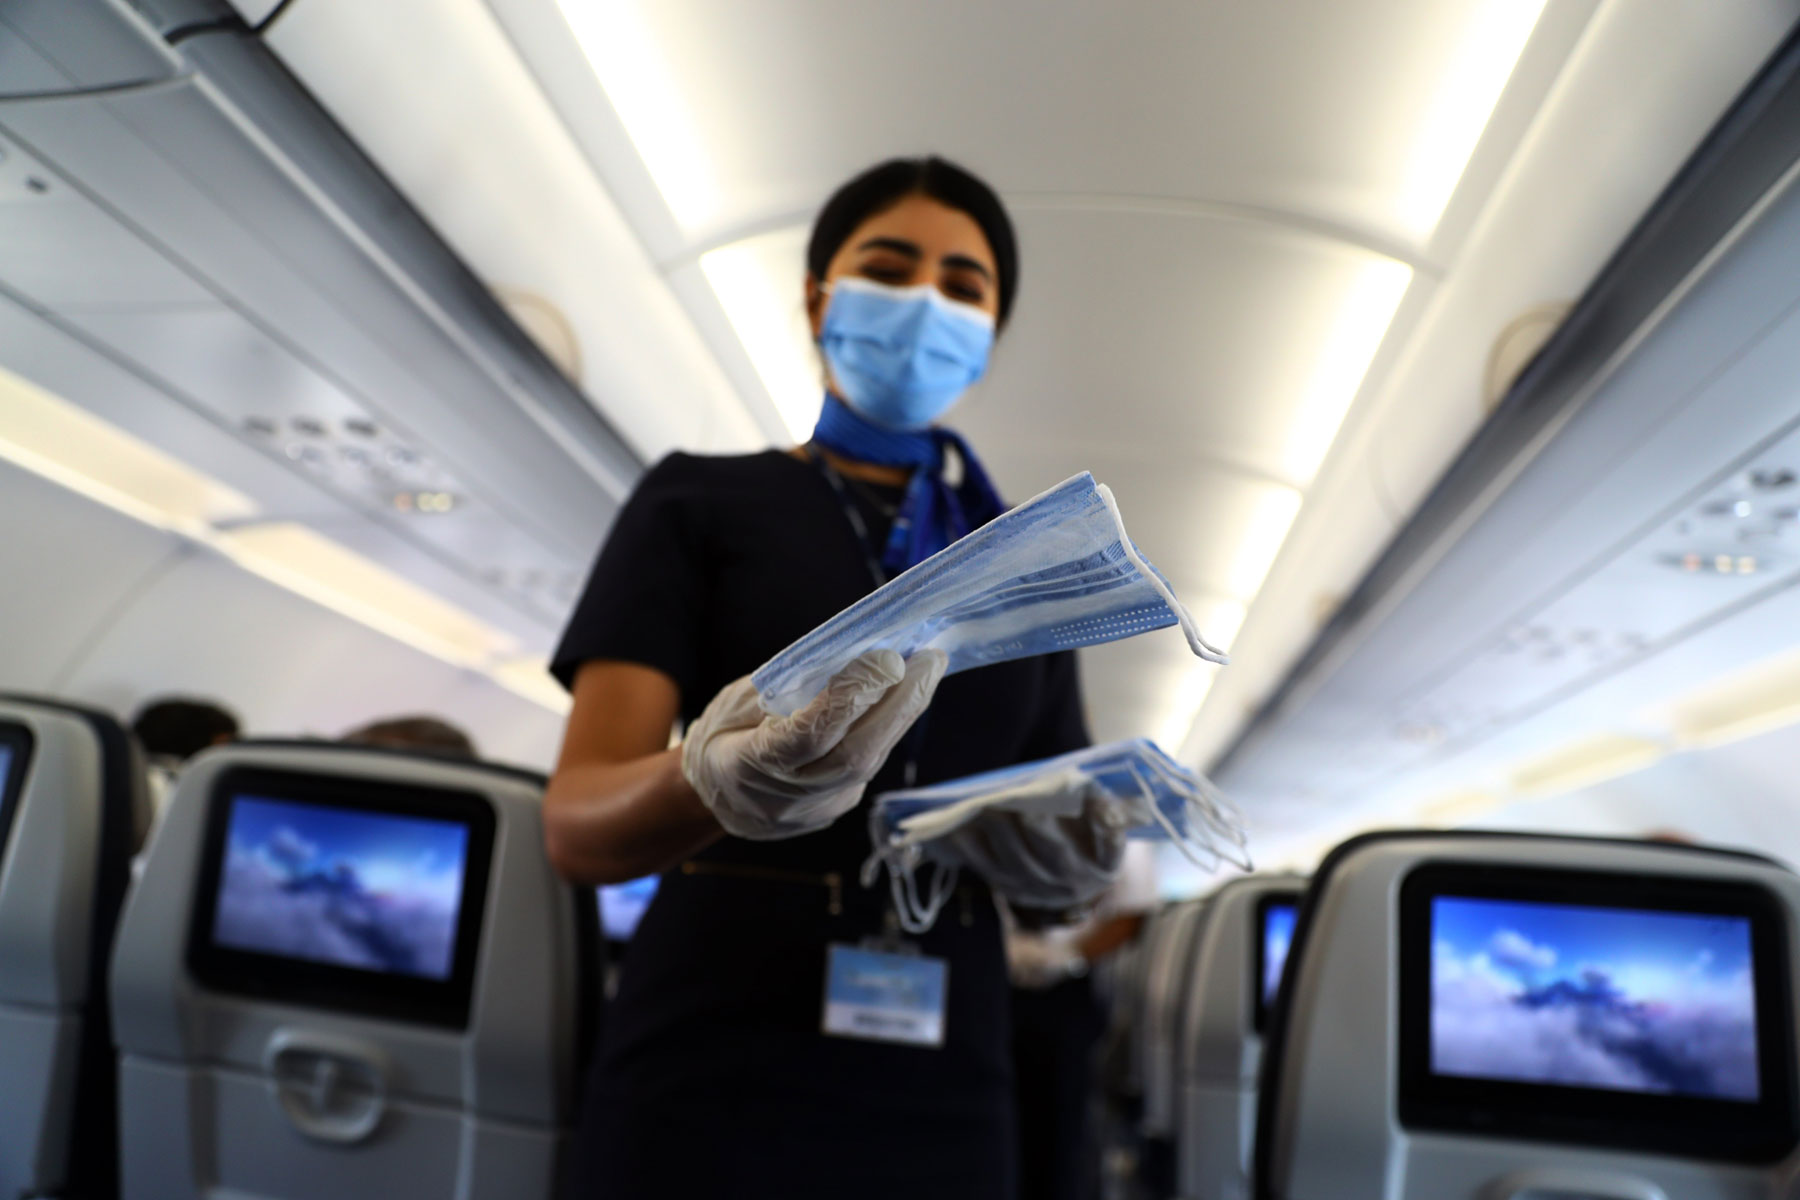 flight attendant face masks to passengers on an airplane